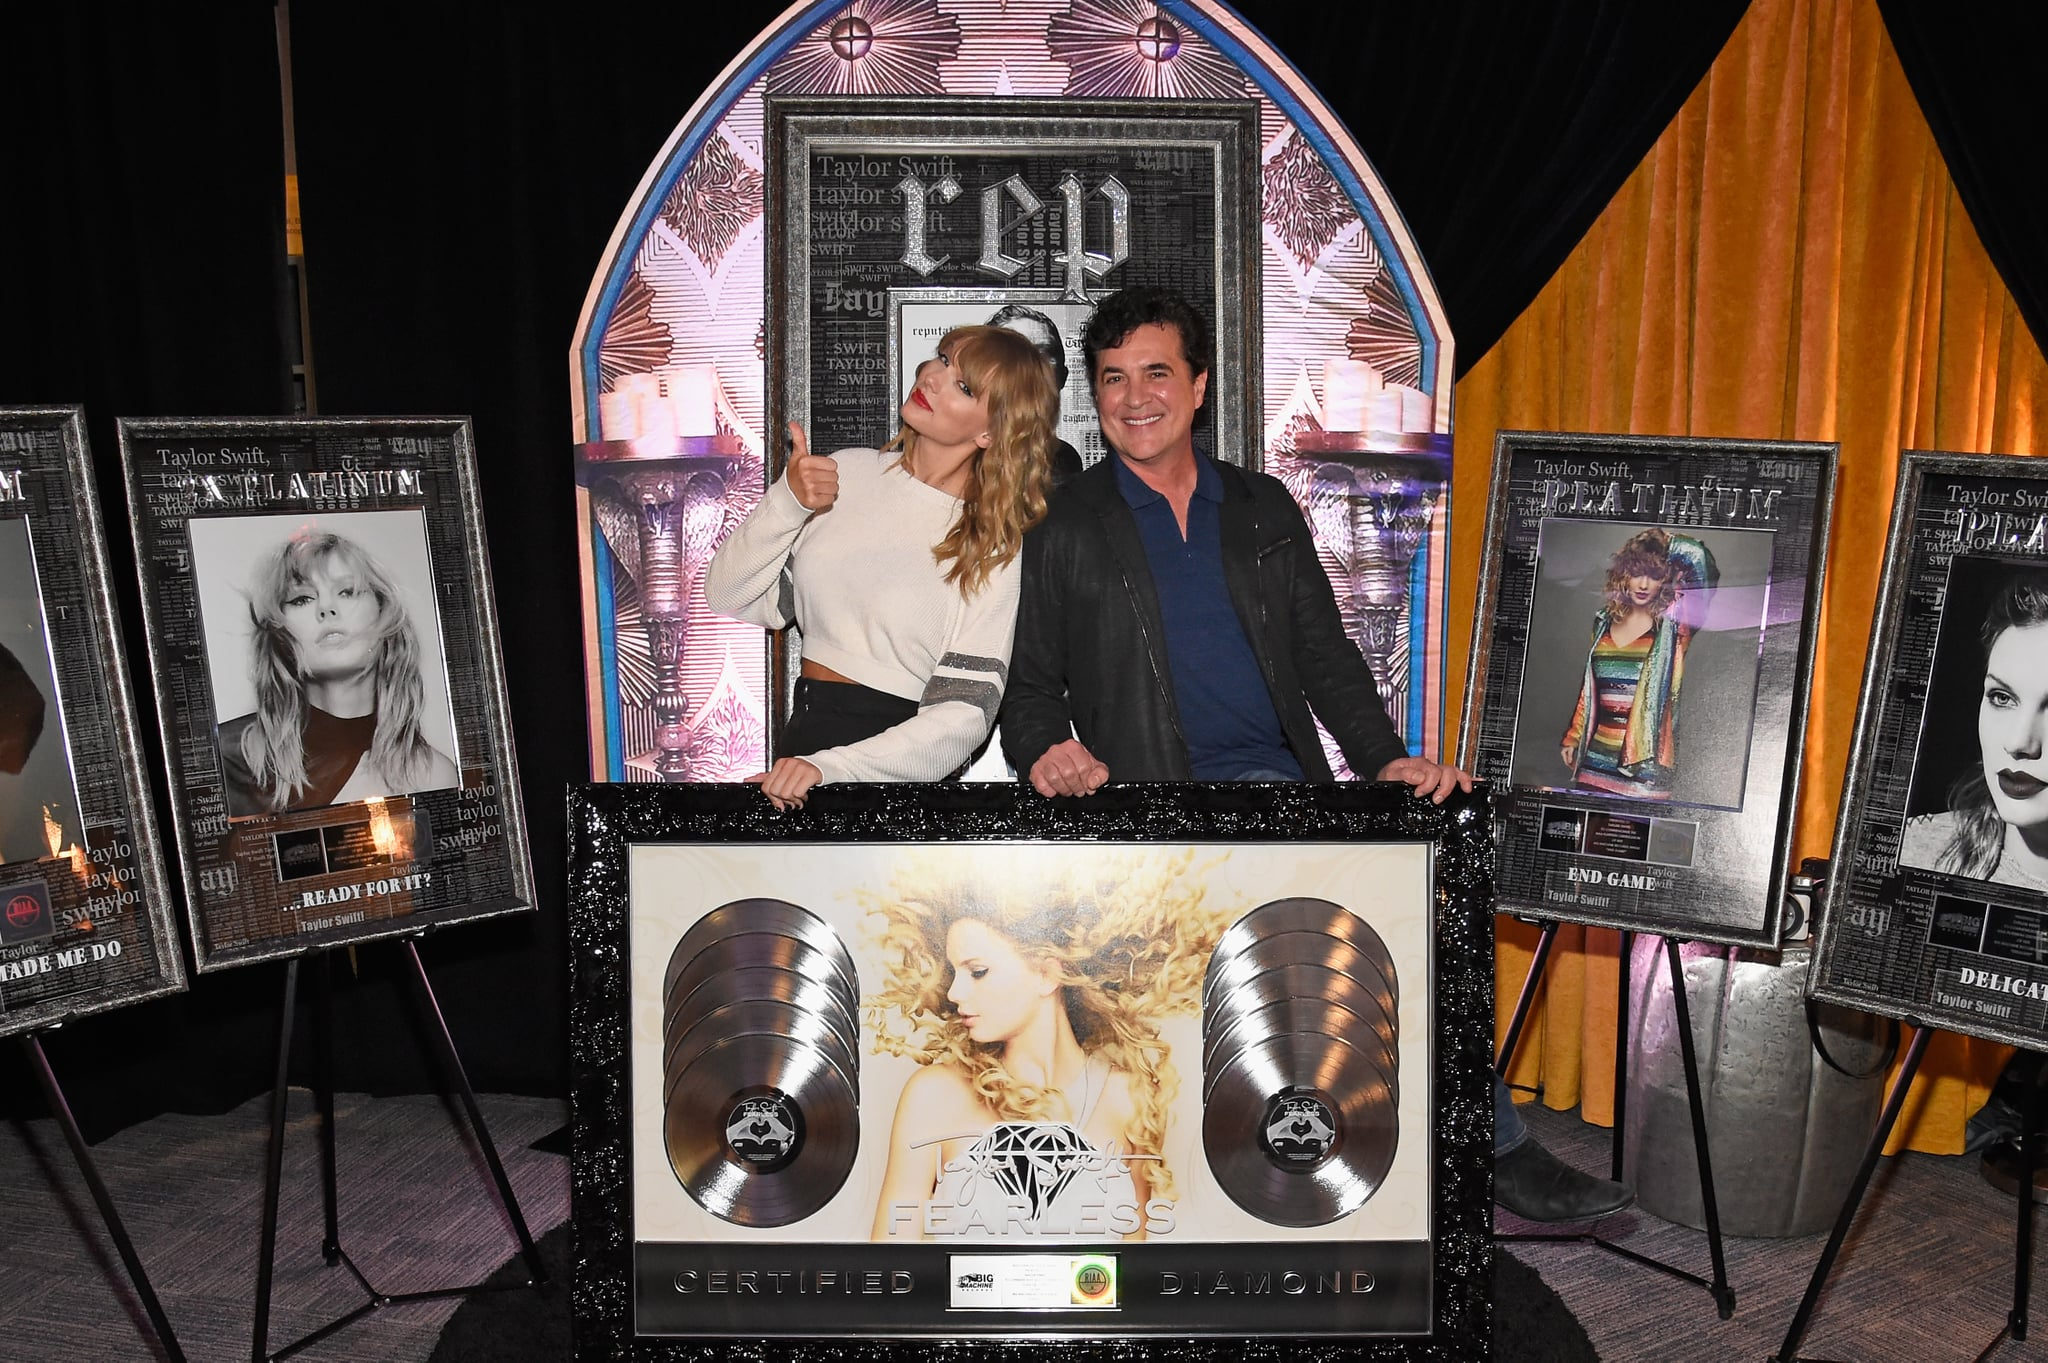 EAST RUTHERFORD, NJ - JULY 21:  Taylor Swift (L) and  CEO of Big Machine Records Scott Borchetta plaque presentation backstage at the Taylor Swift reputation Stadium Tour at MetLife Stadium on July 21, 2018 in East Rutherford, New Jersey.  (Photo by Kevin Mazur/TAS18/Getty Images for TAS)